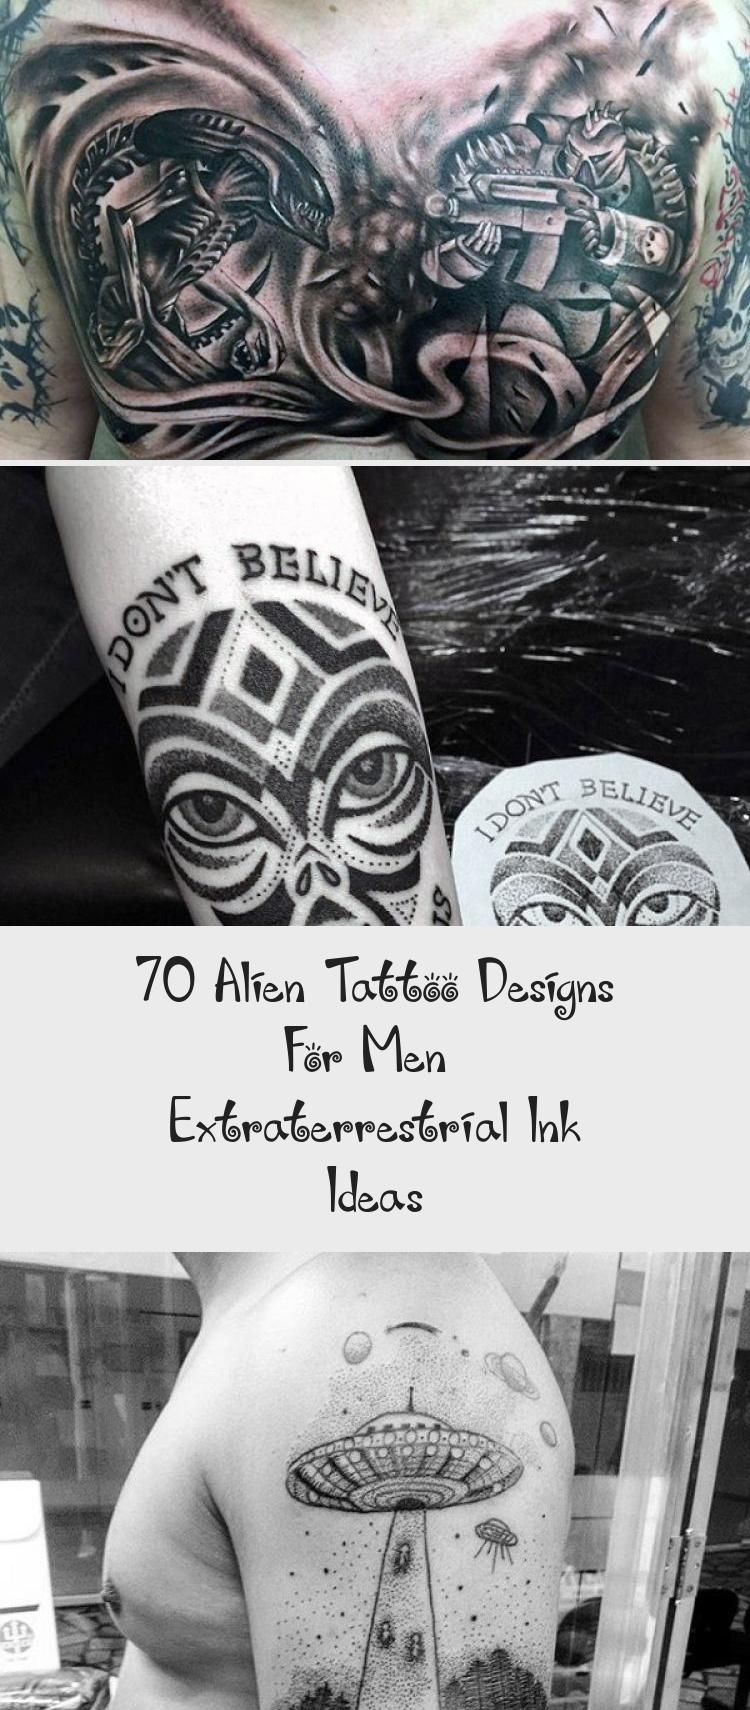 Creative Alien Abuduction Mens Forearm Sleeve Tattoo With Negative Space Design   Creative Alien Abuduction Mens Forearm Sleeve Tattoo With Negative Space Design